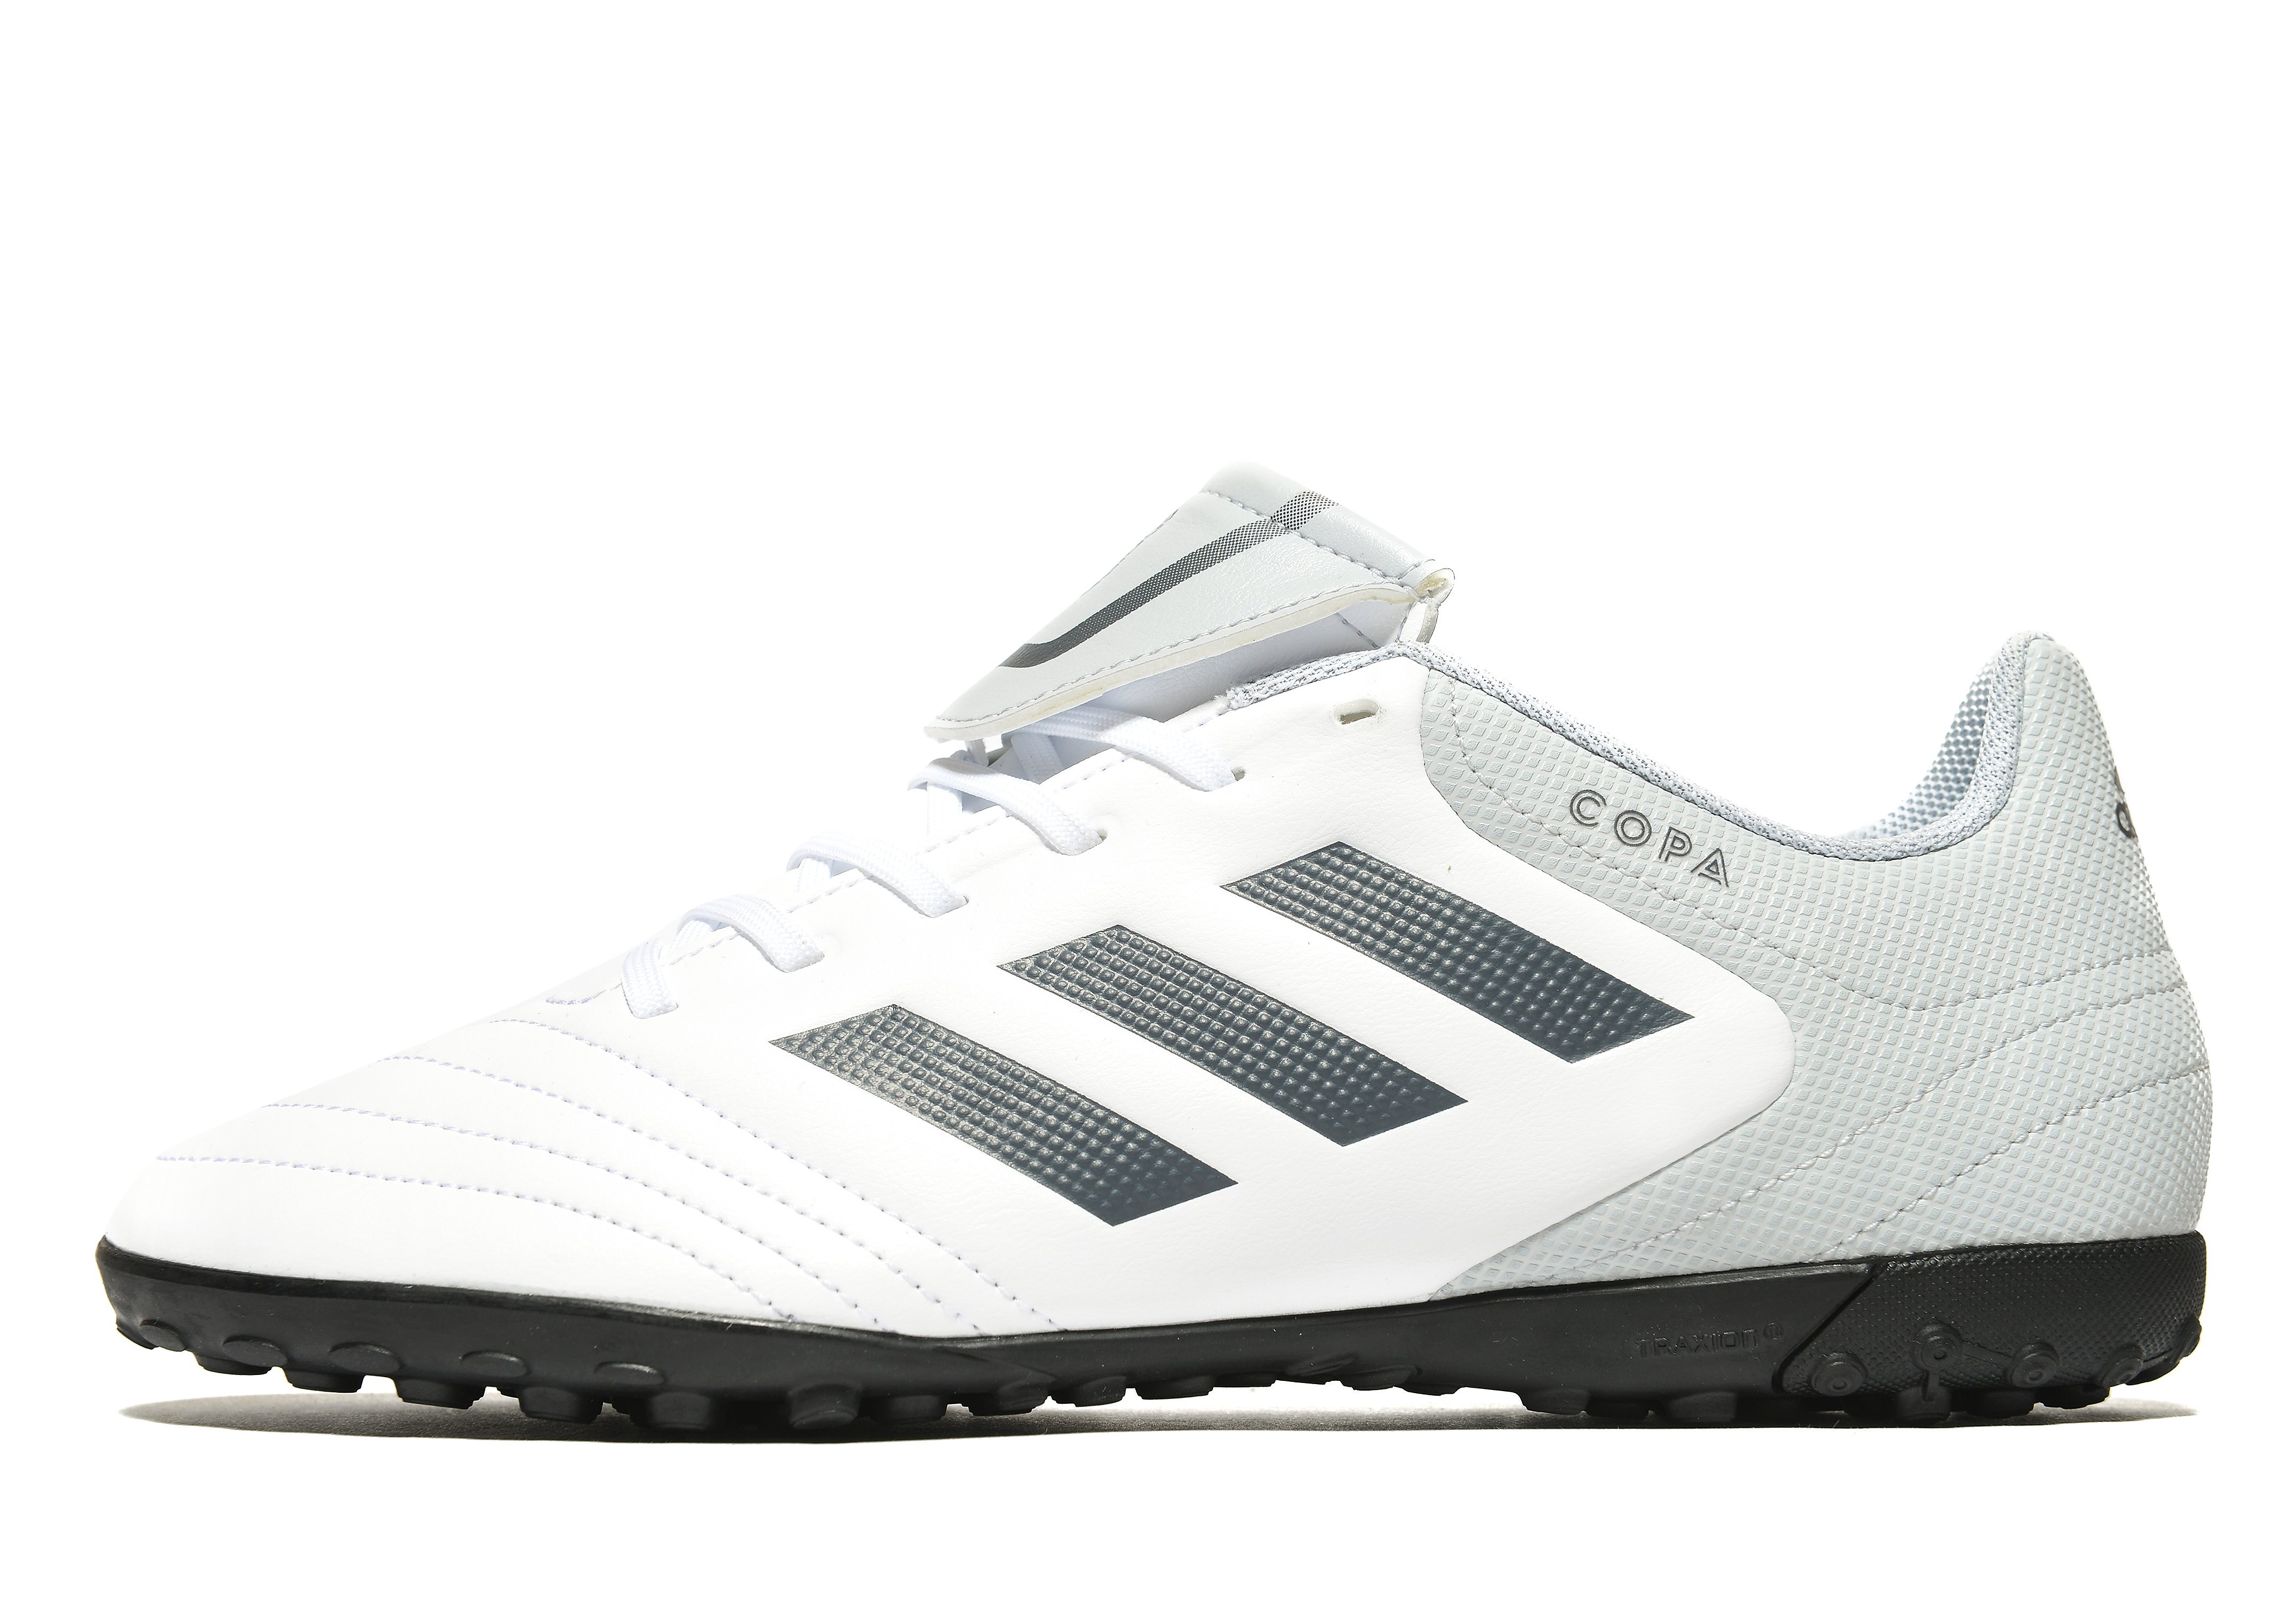 adidas Copa 17.4 TF Homme